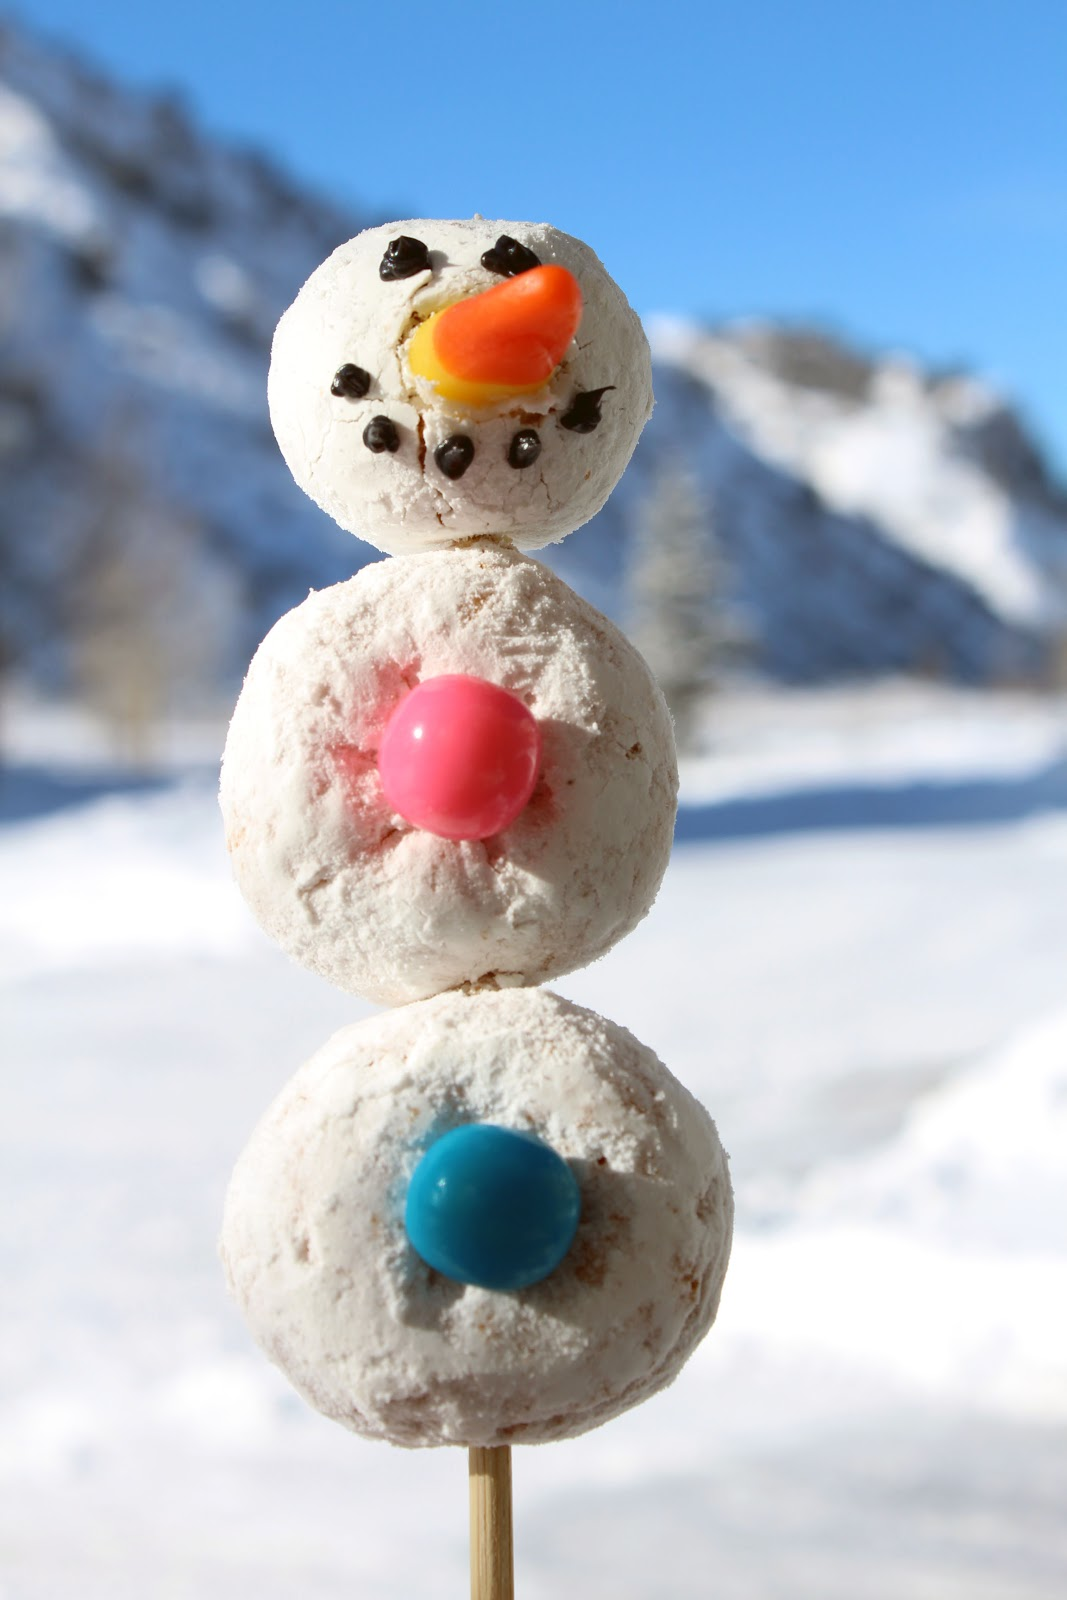 No Oven Required For These Snowmen Unless You Make Your Own Powdered Donuts It Was 14f This Morning The Oven Could Have Helped Heat The House